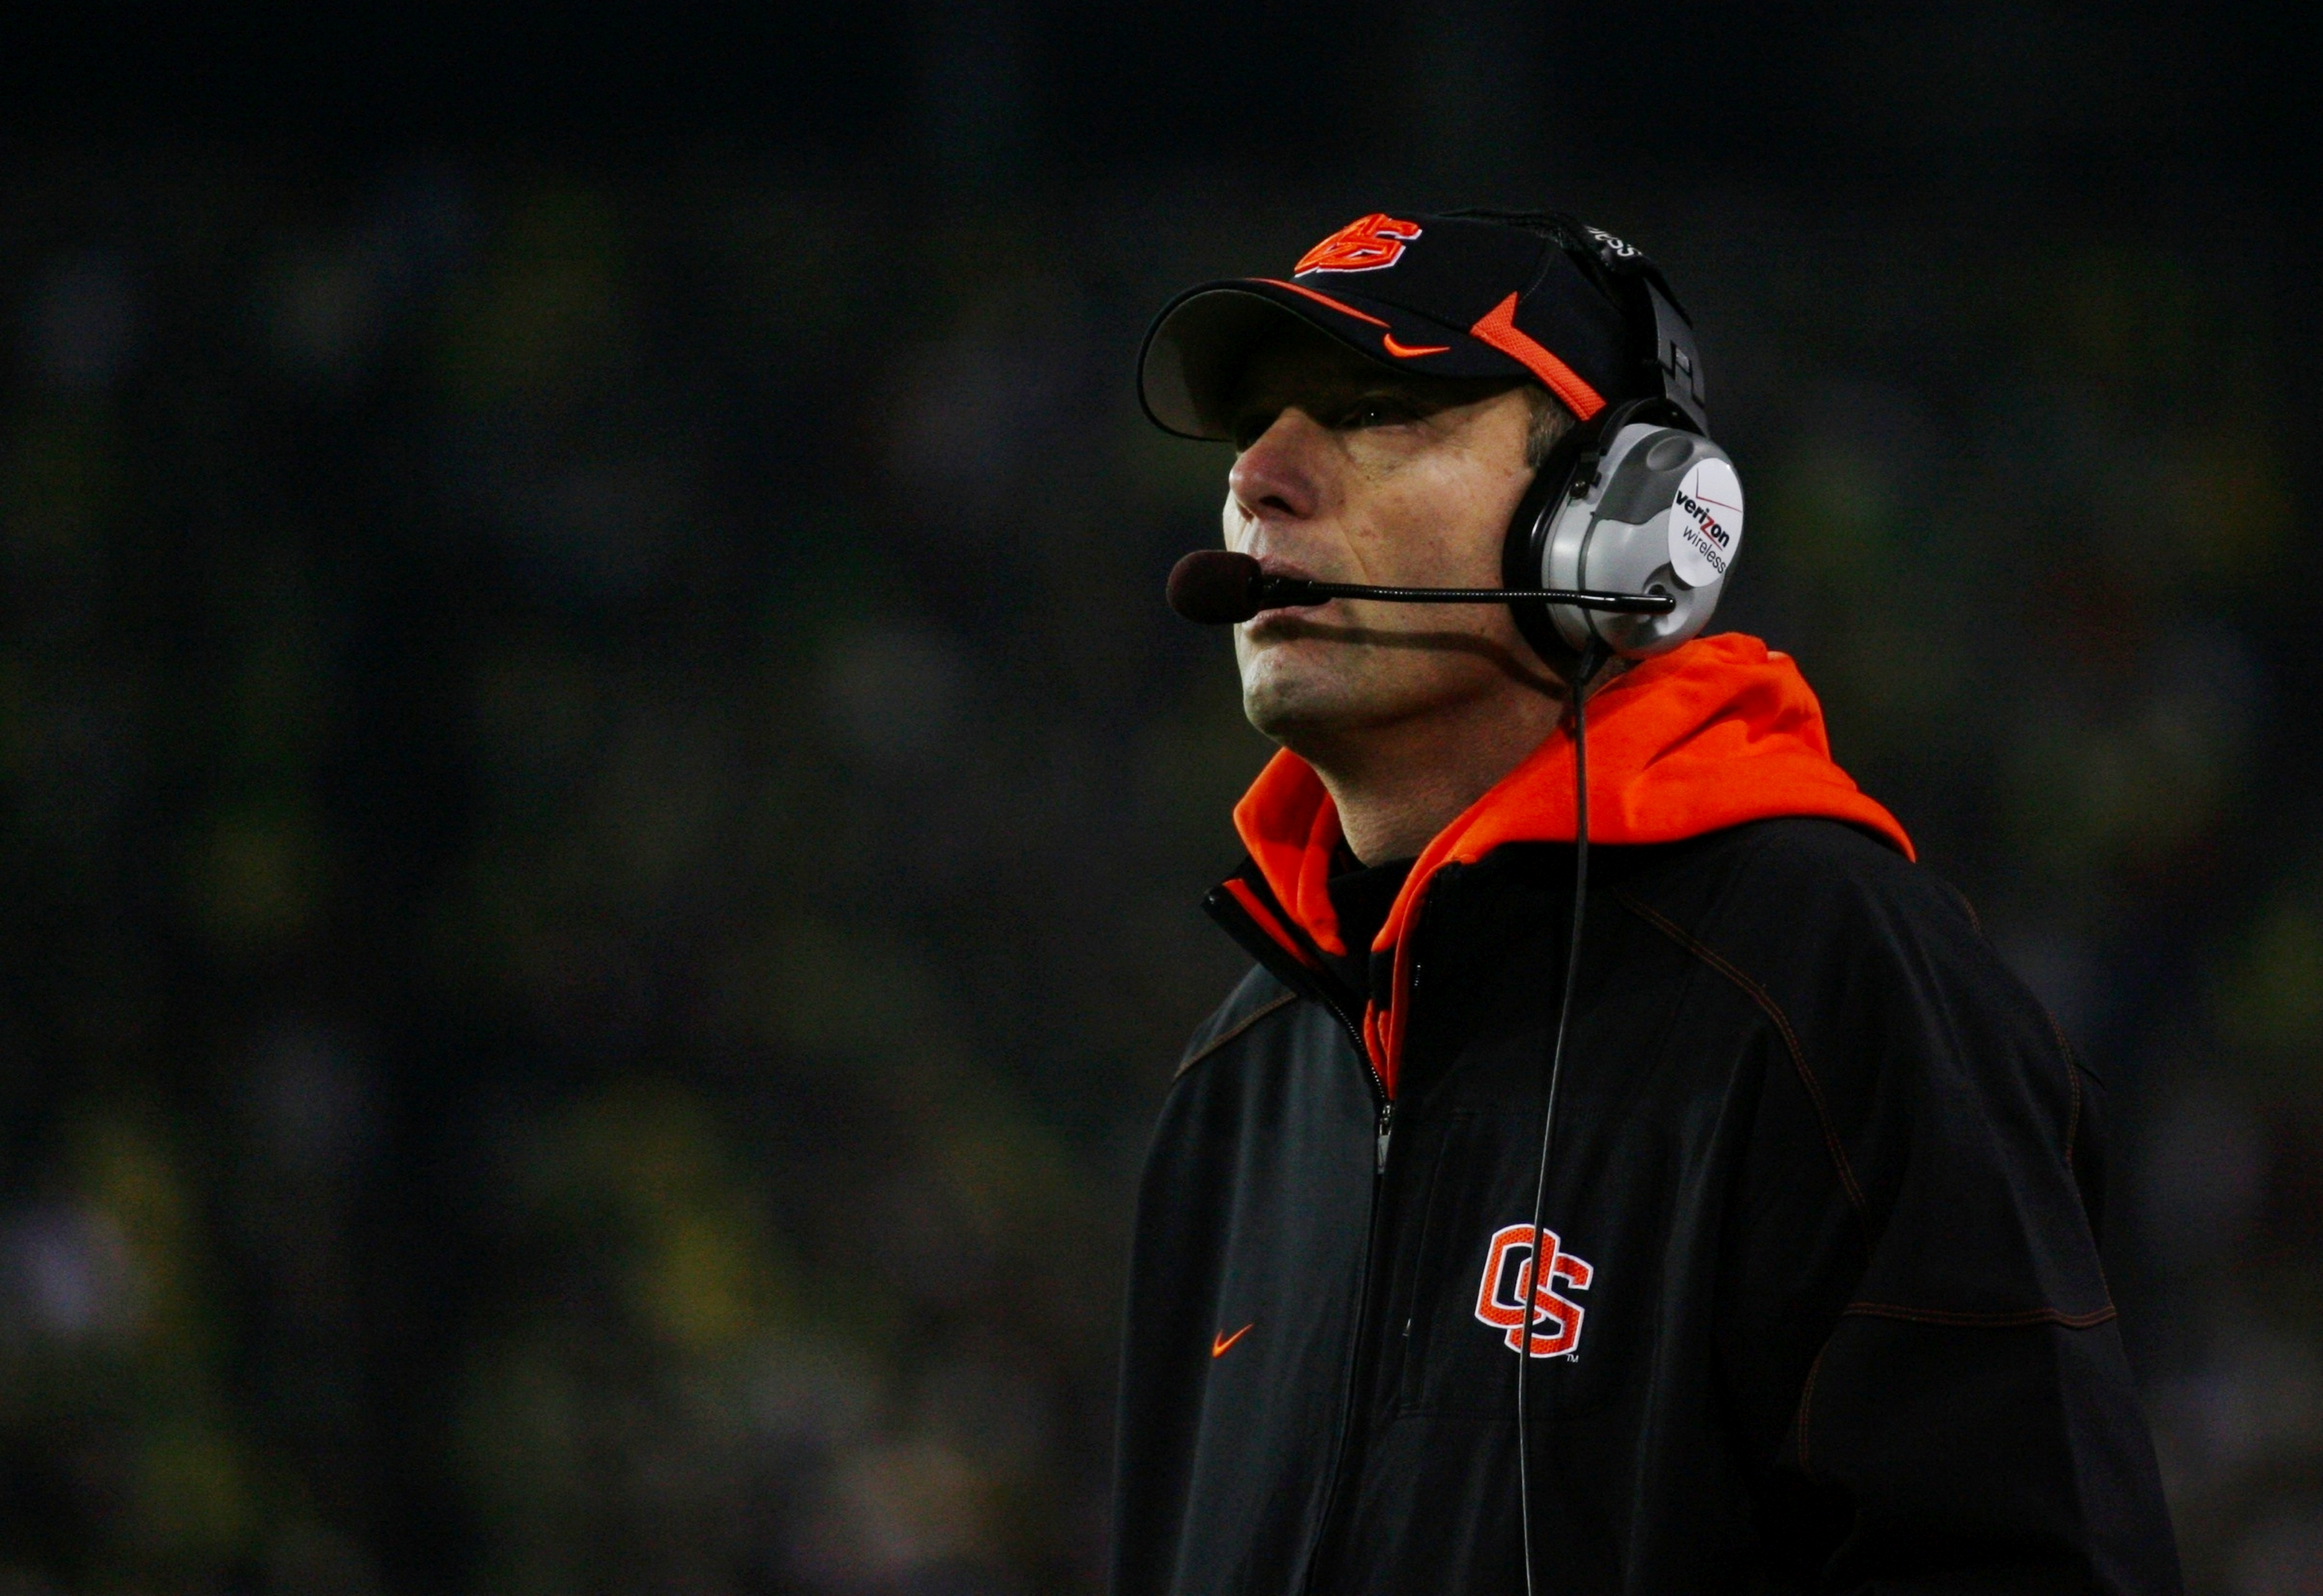 EUGENE,OR - DECEMBER 03:  Head coach Mike Riley of the Oregon State Beavers watches play against the Oregon Ducks at Autzen Stadium on December 3, 2009 in Eugene, Oregon.  (Photo by Tom Hauck/Getty Images)